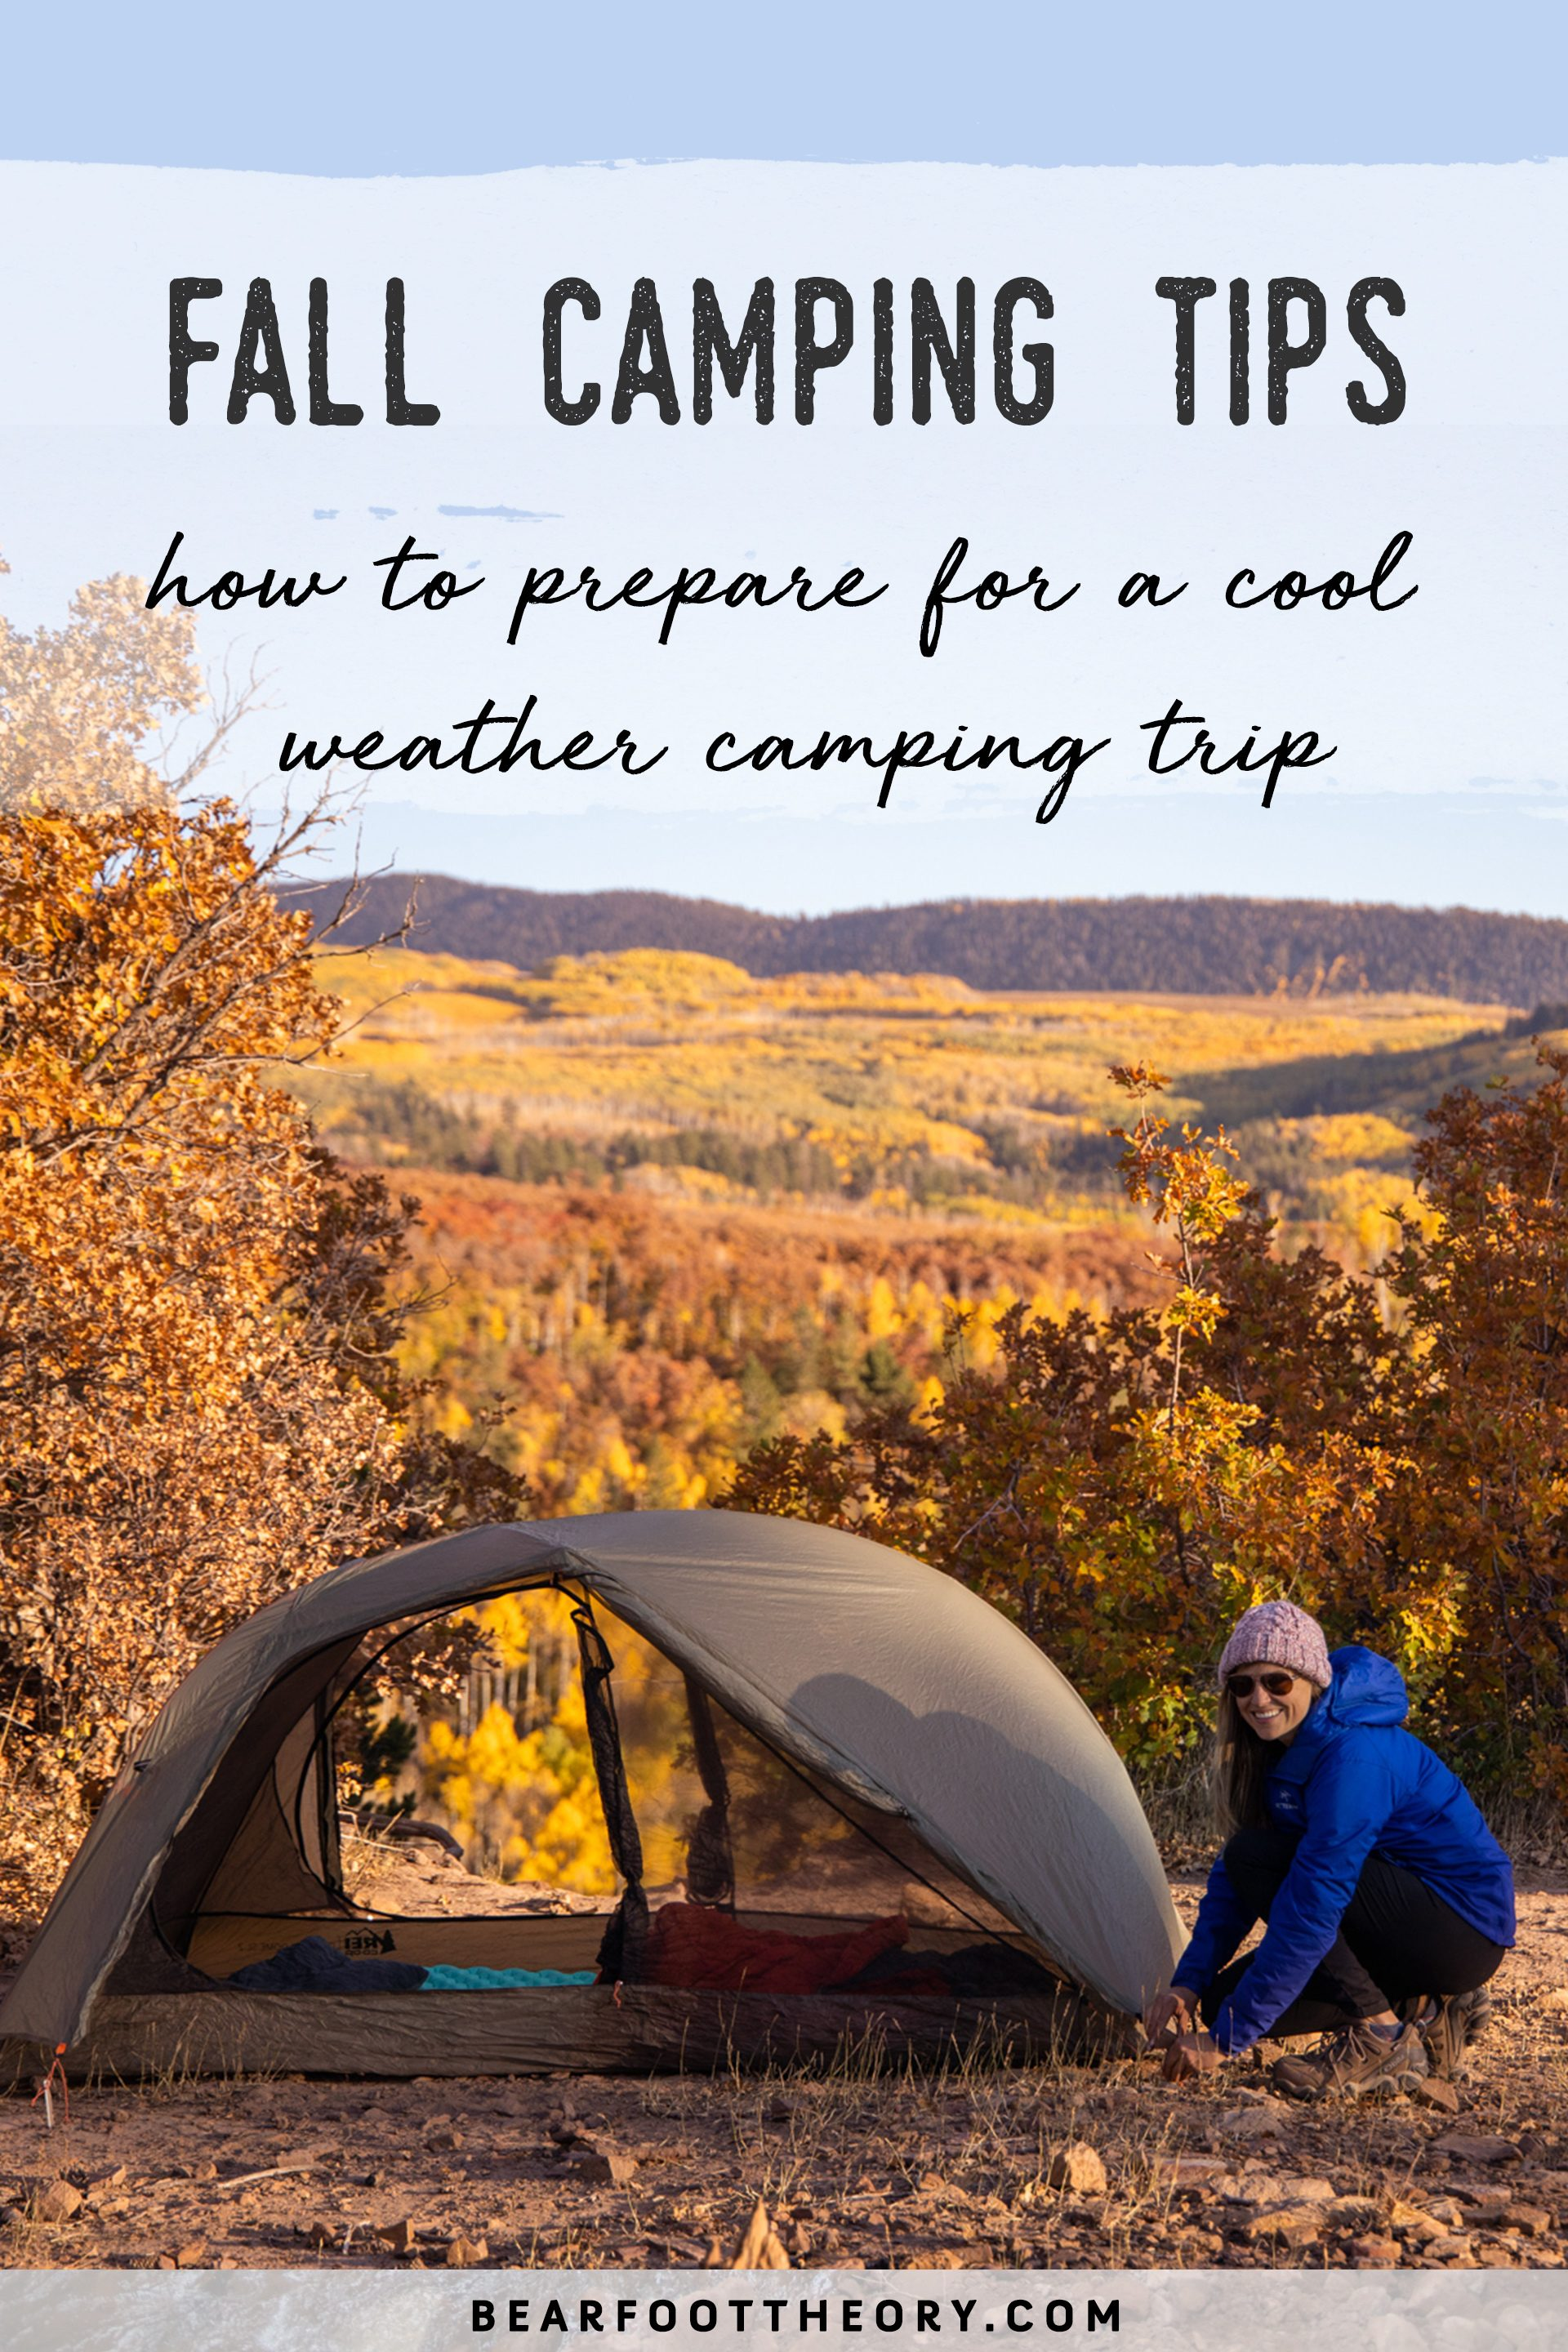 The summer crowds have dispersed, but it's still prime camping season. Get prepared and learn how to stay warm with these fall camping tips.